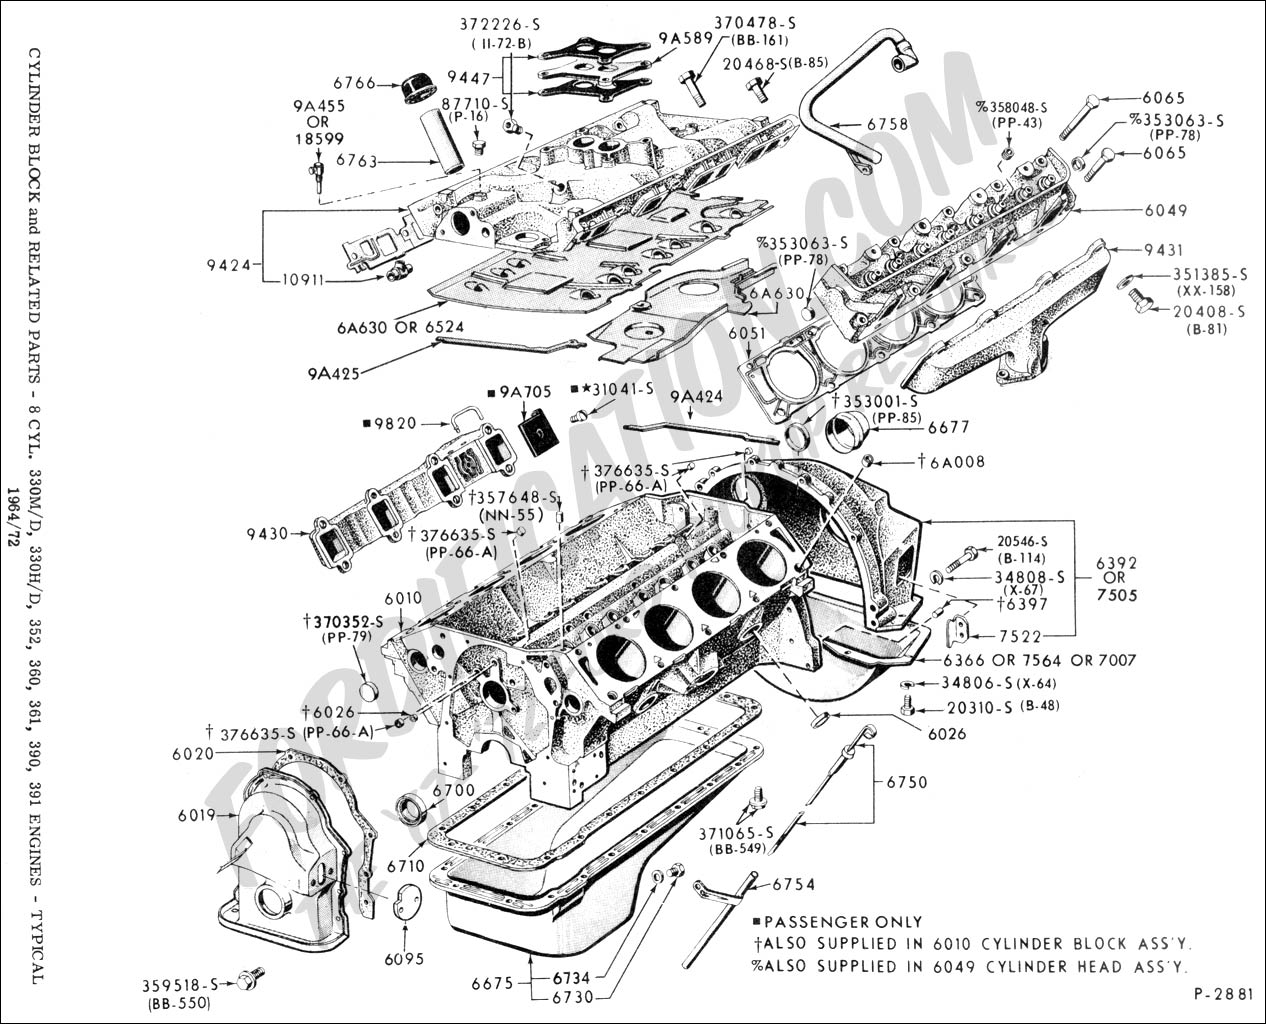 1988 ford f250 alternator wiring diagram with Schematics E on Schematics i together with Showthread php together with 1119530 86 F350 Starting Problems further 99 CIVIC WIRING DIAGRAM COURTESY LIGHTS L21935 in addition 1989 Ford F350 Wiring Diagram Color Code.